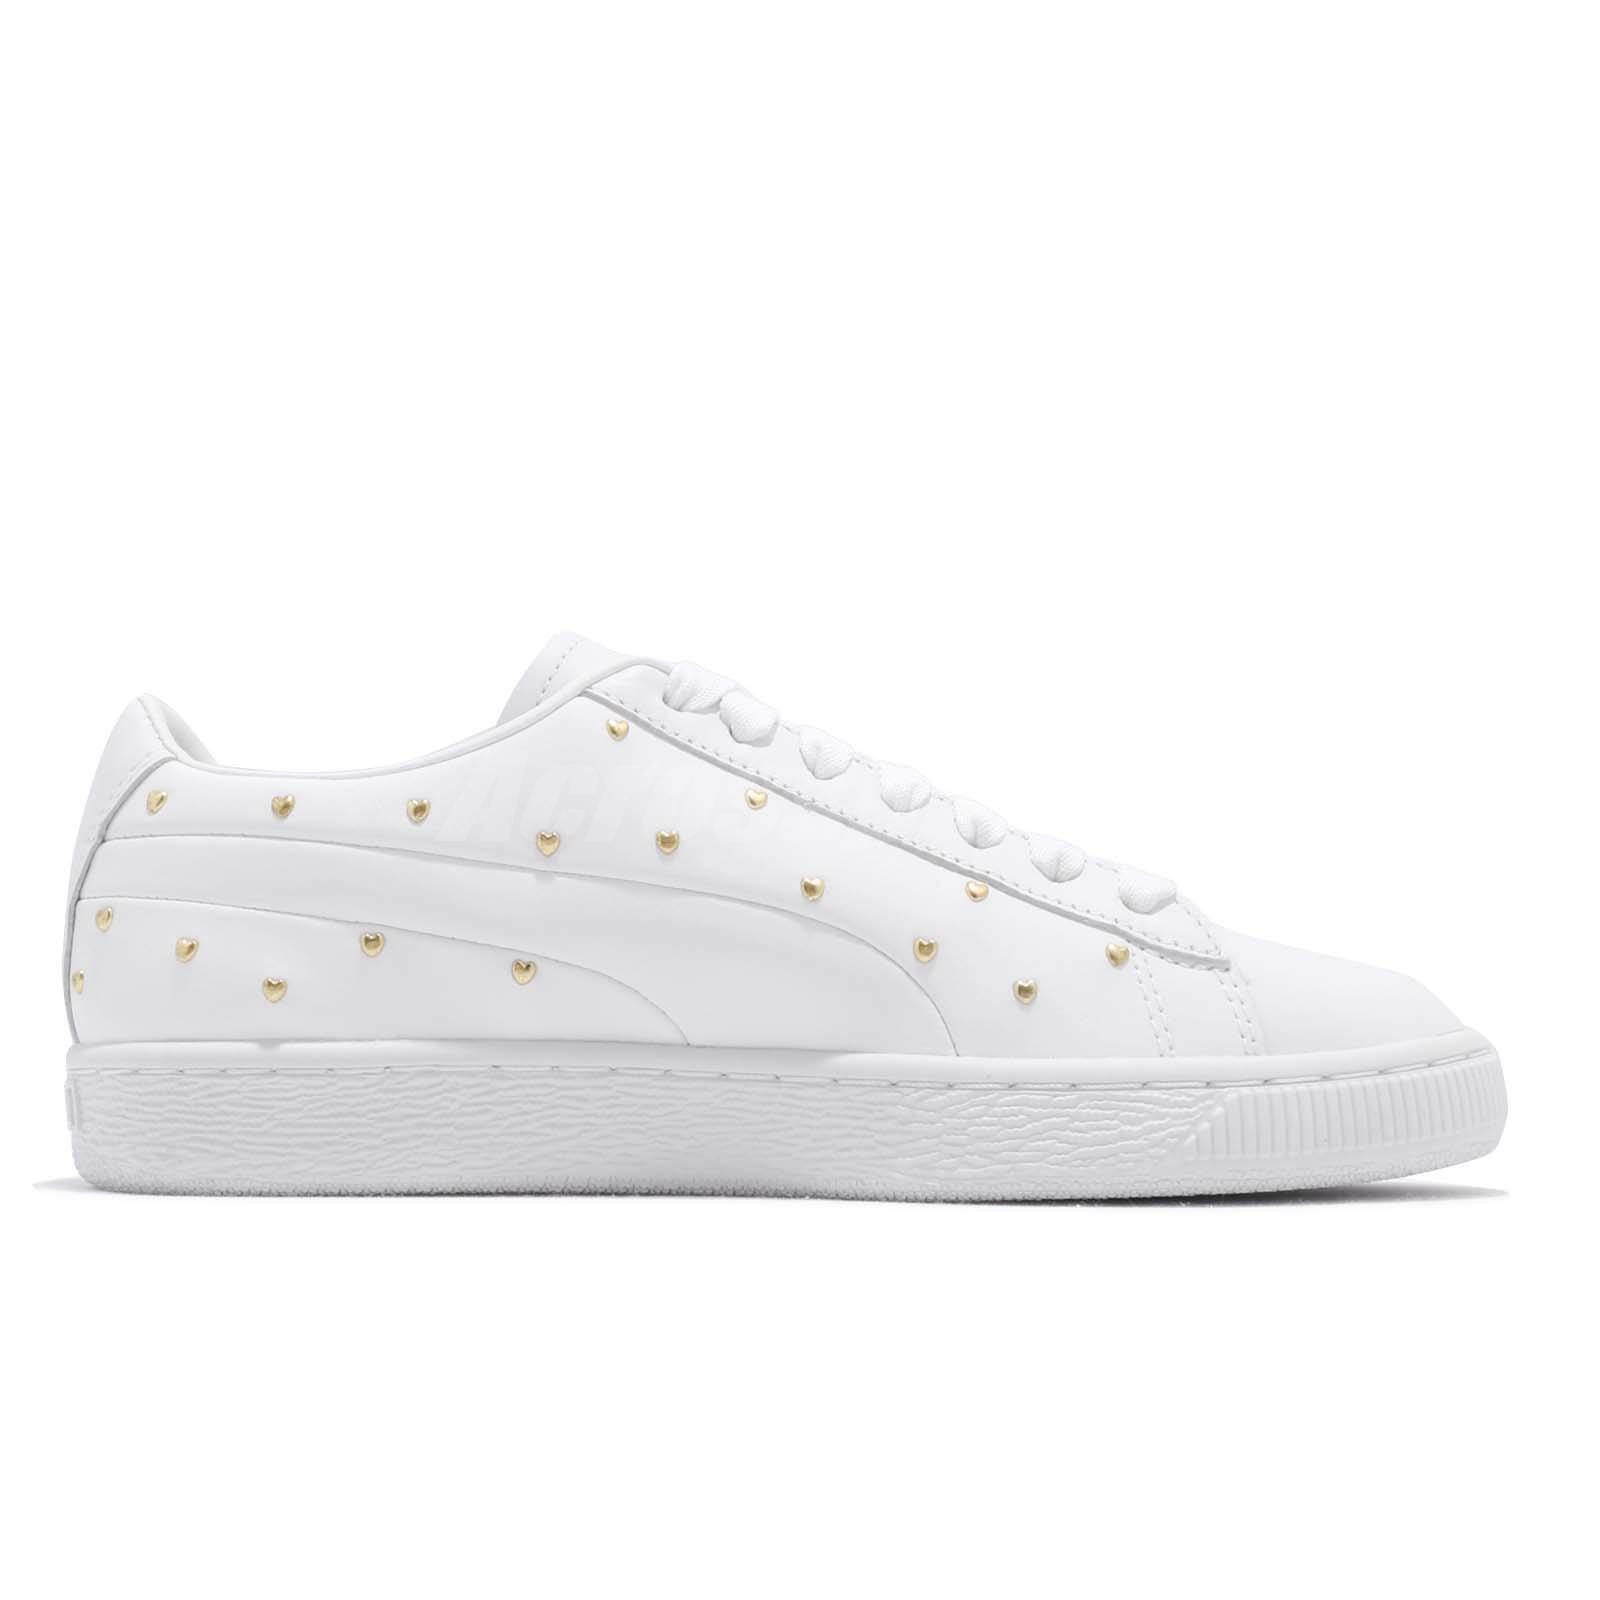 Details about Puma Basket Studs Wns White Gold Women Casual Lifestyle Shoes Sneakers 369298 01